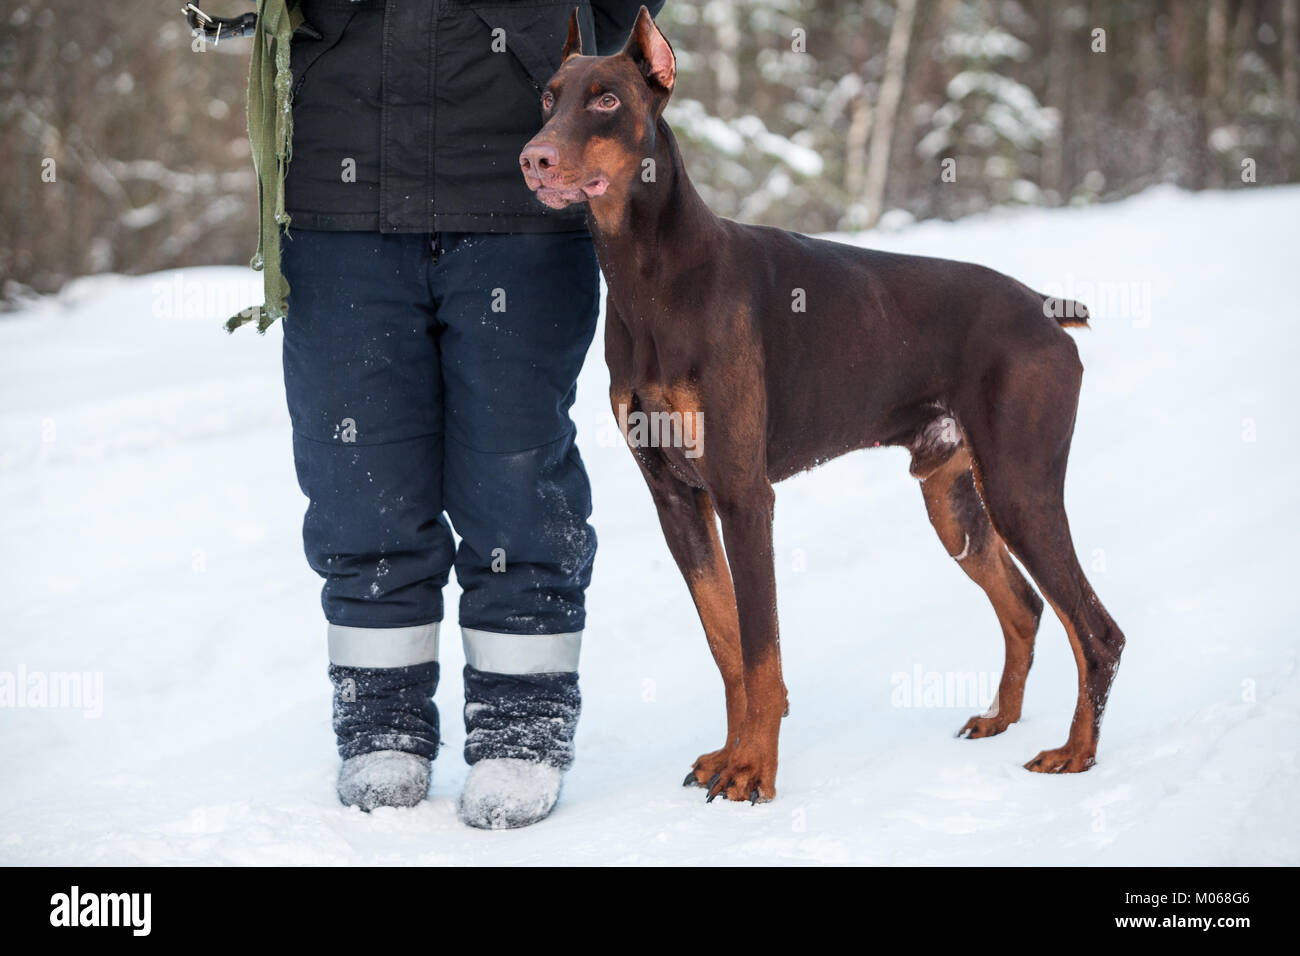 Brown doberman dog standing near man cynologist at winter season, full-length - Stock Image